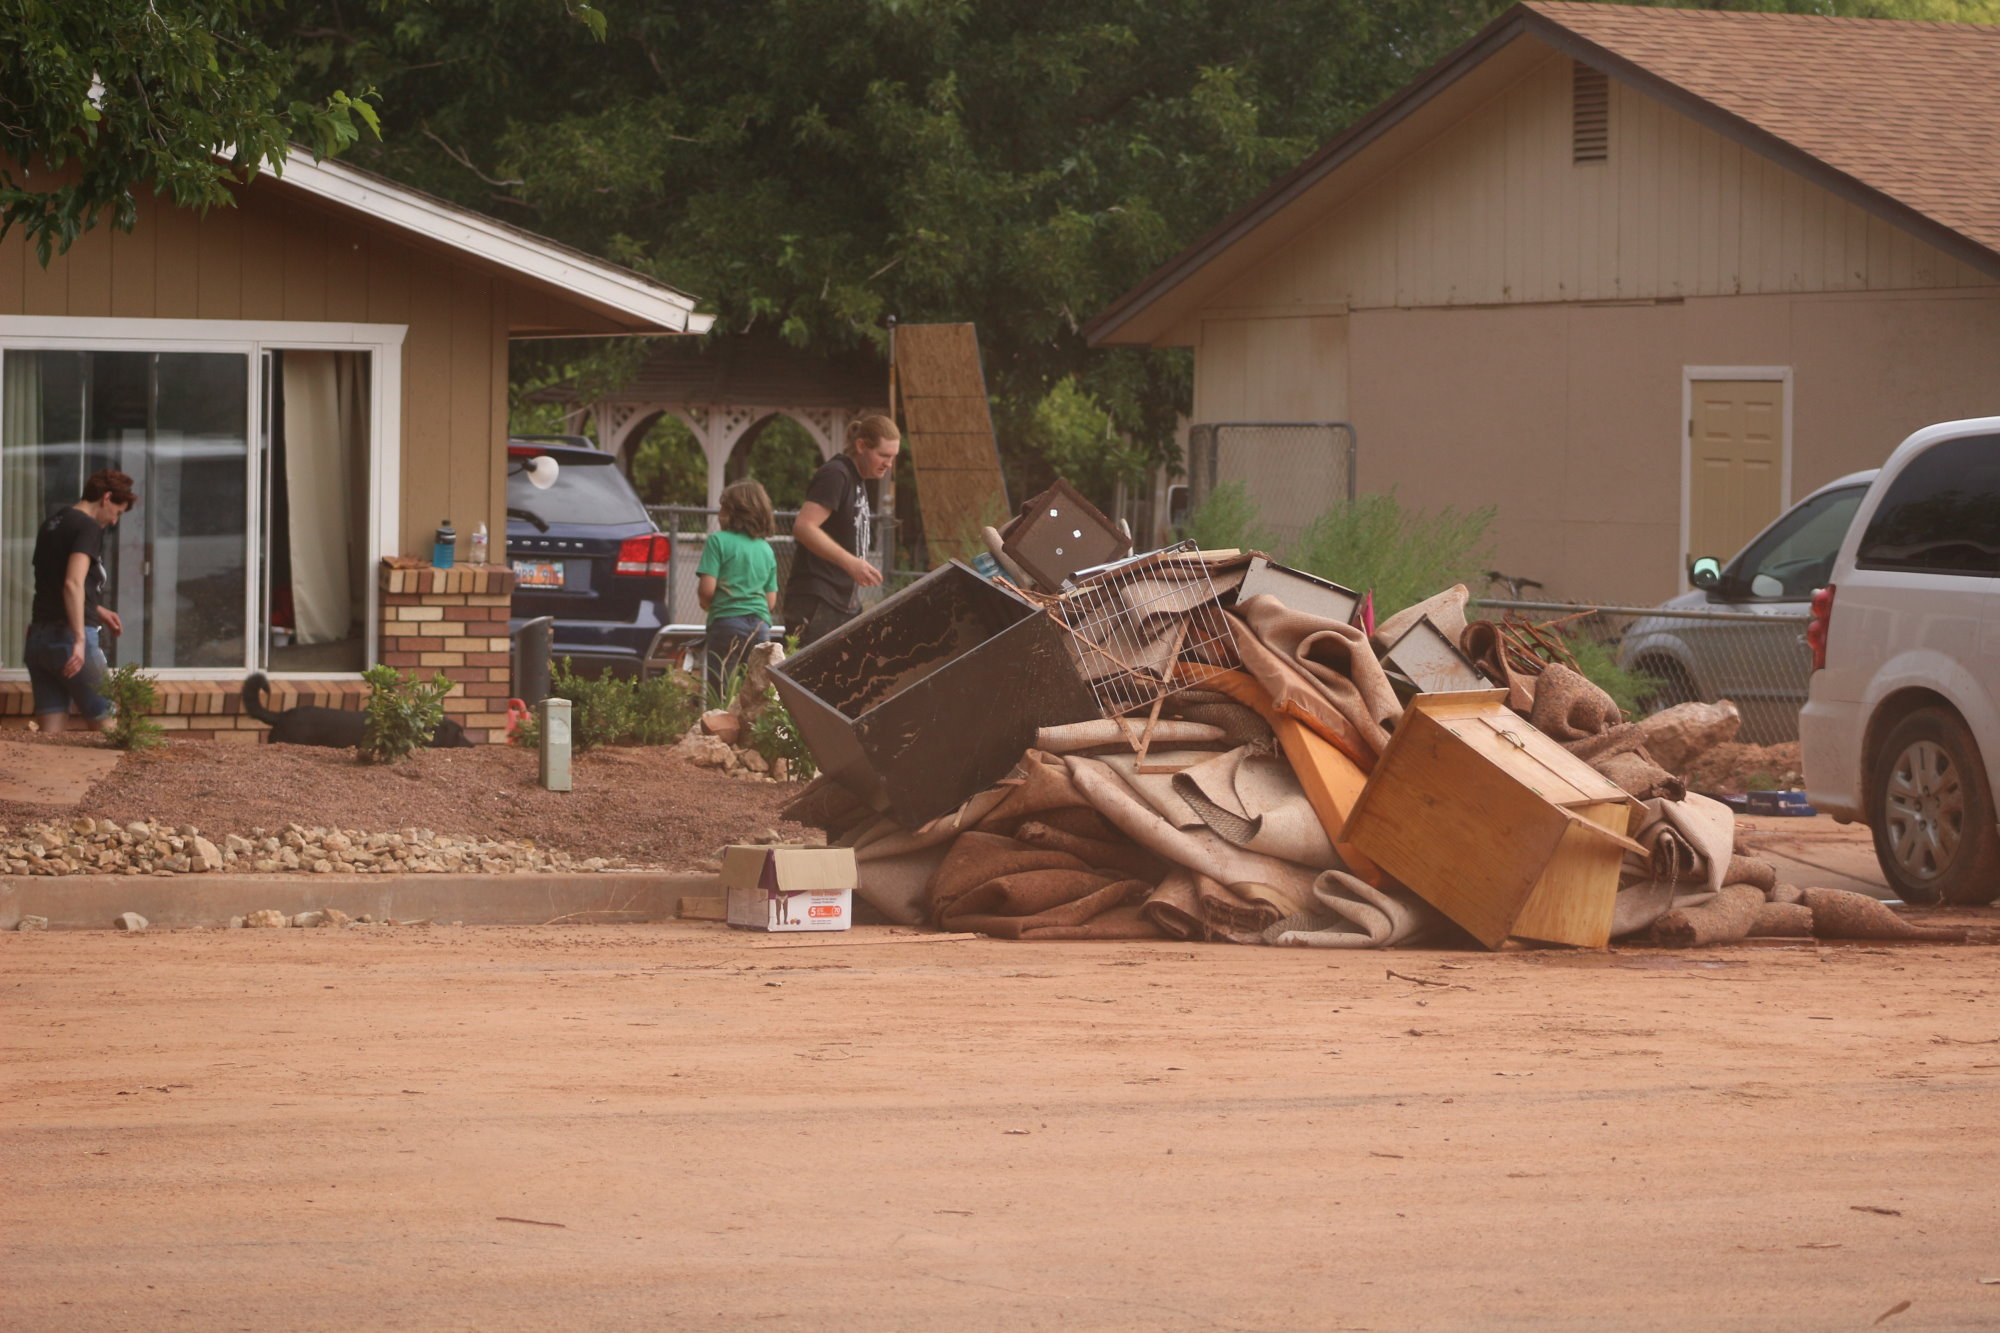 Washington City considers possible solutions to Main Street flooding ...